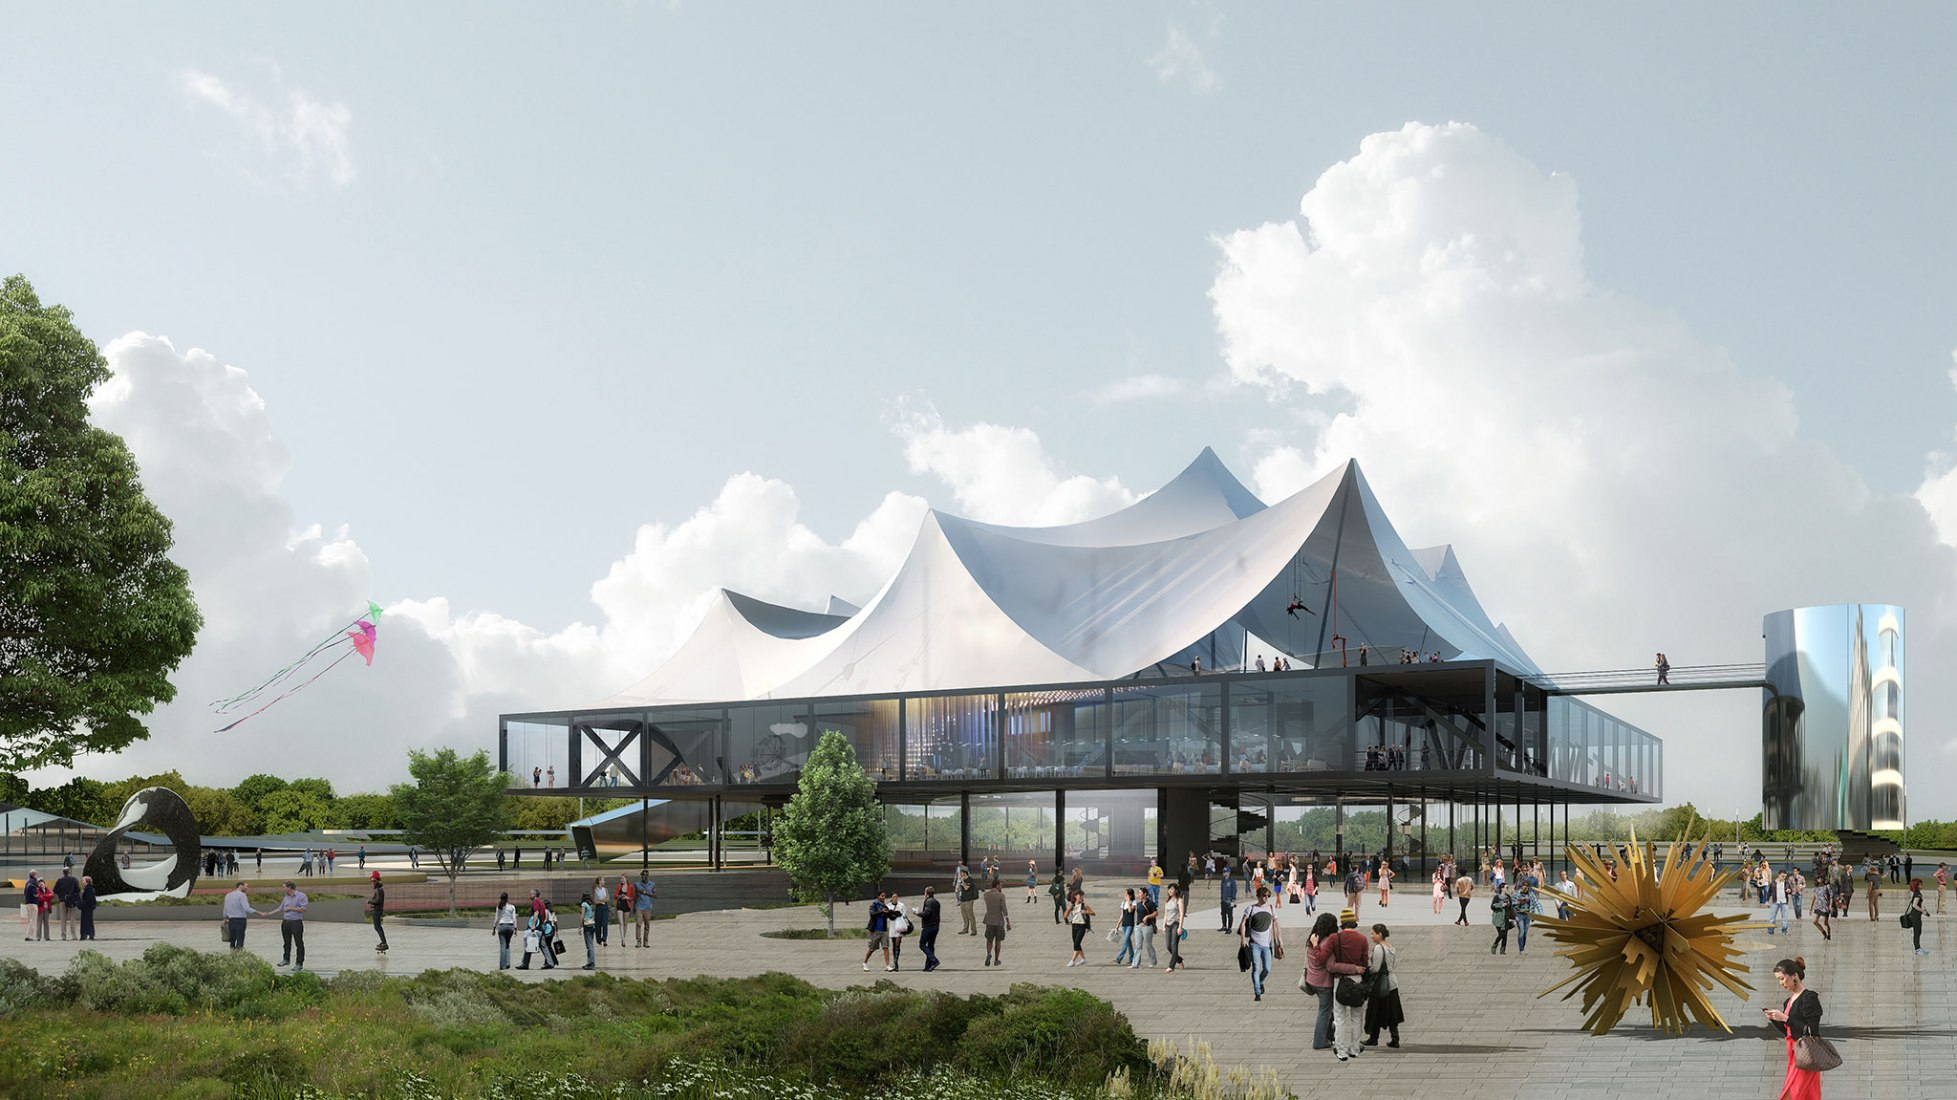 Exterior render. Clément Blanchet Architecture wins the international competition for the design of the new Circus ³. Courtesy of the architects